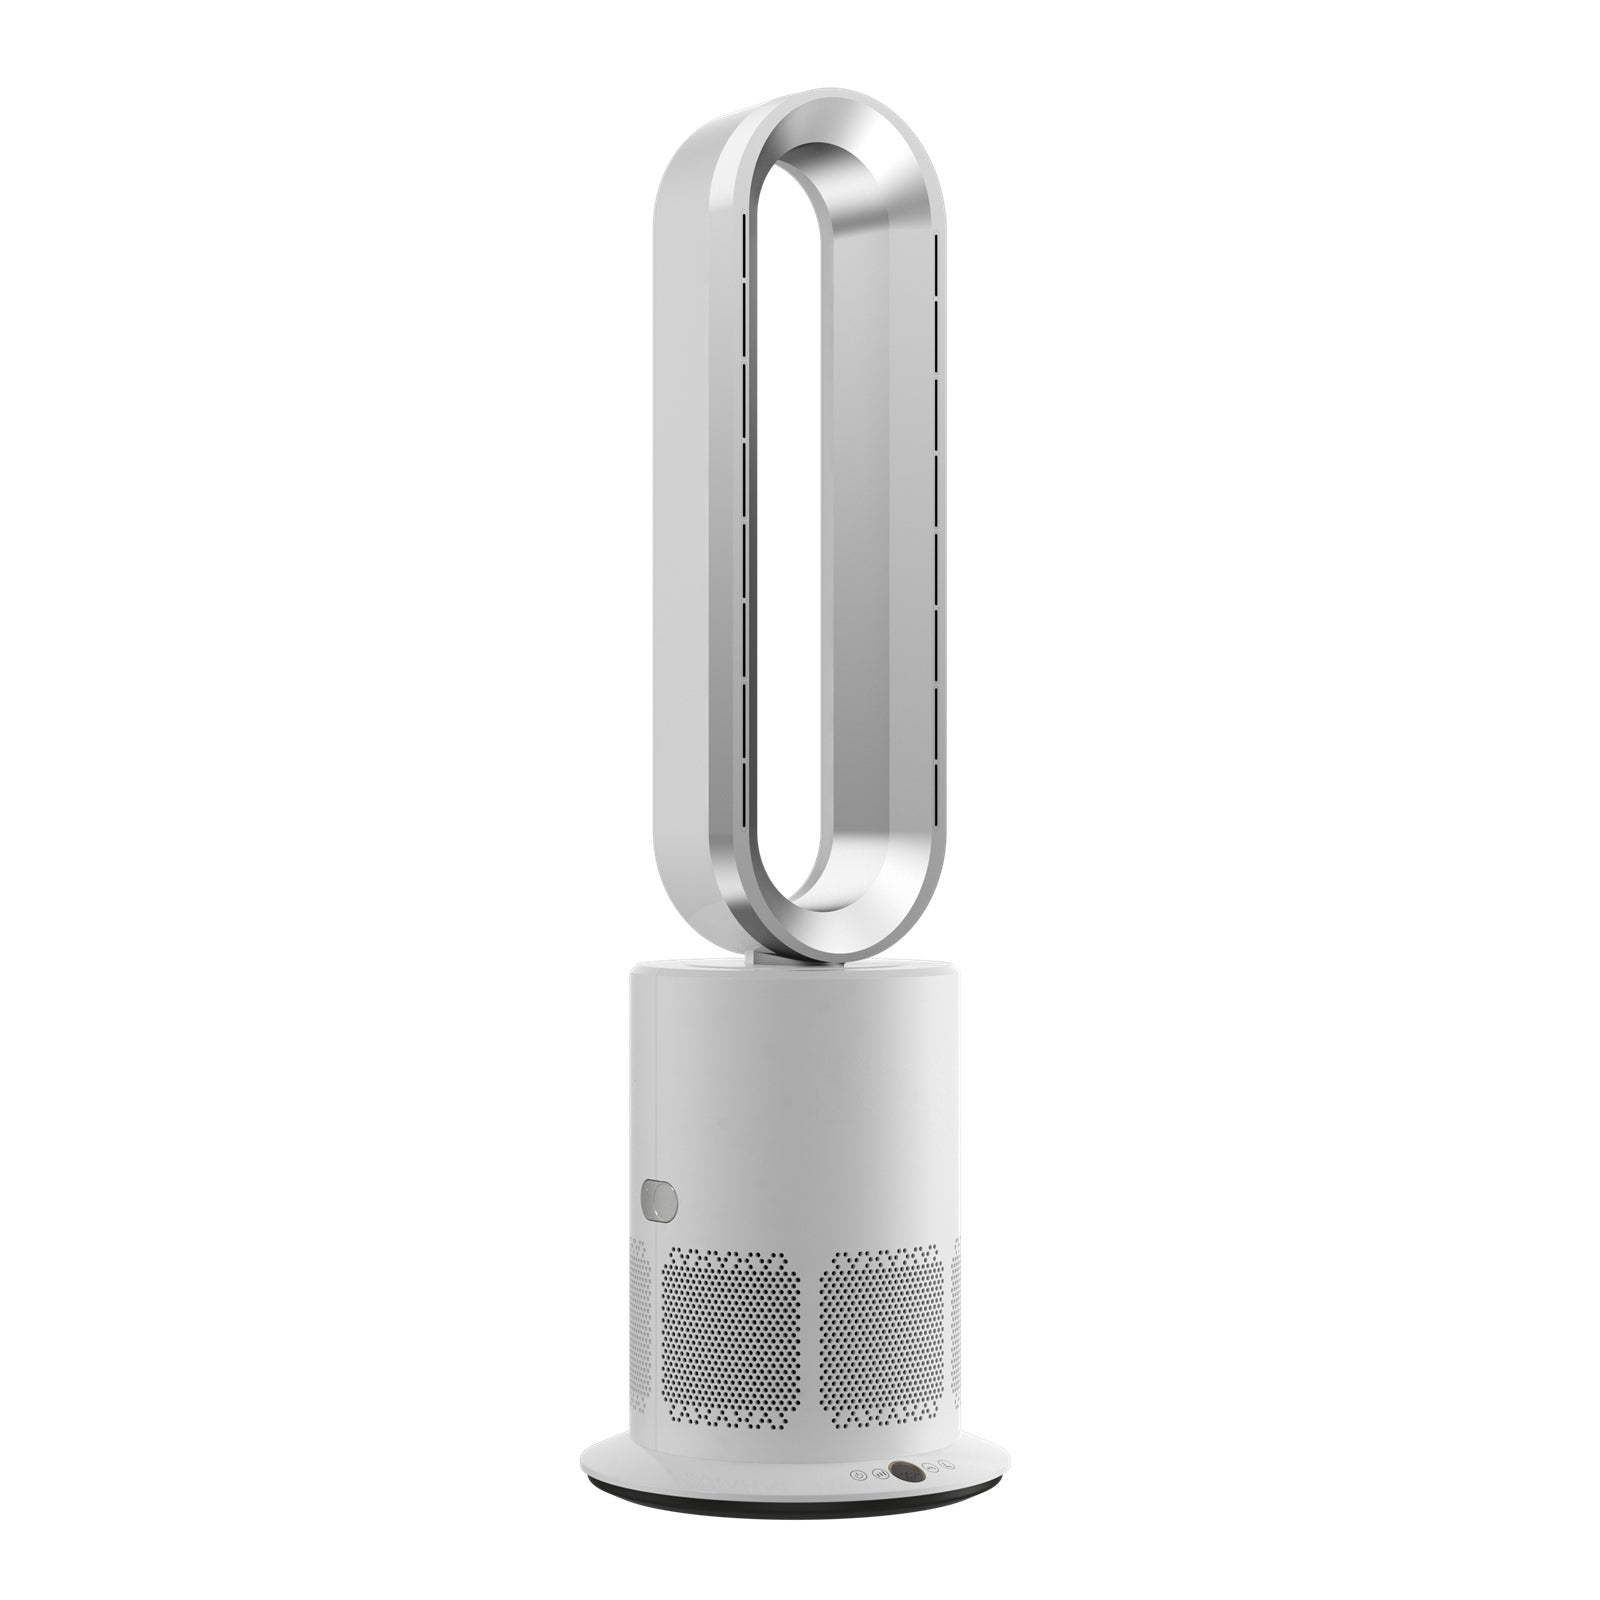 ANGELO Floor Cool Heat Bladeless Fan Air Purification Remote Control 9h Timer 10 Speeds   Buy Tower Fans - 1707787